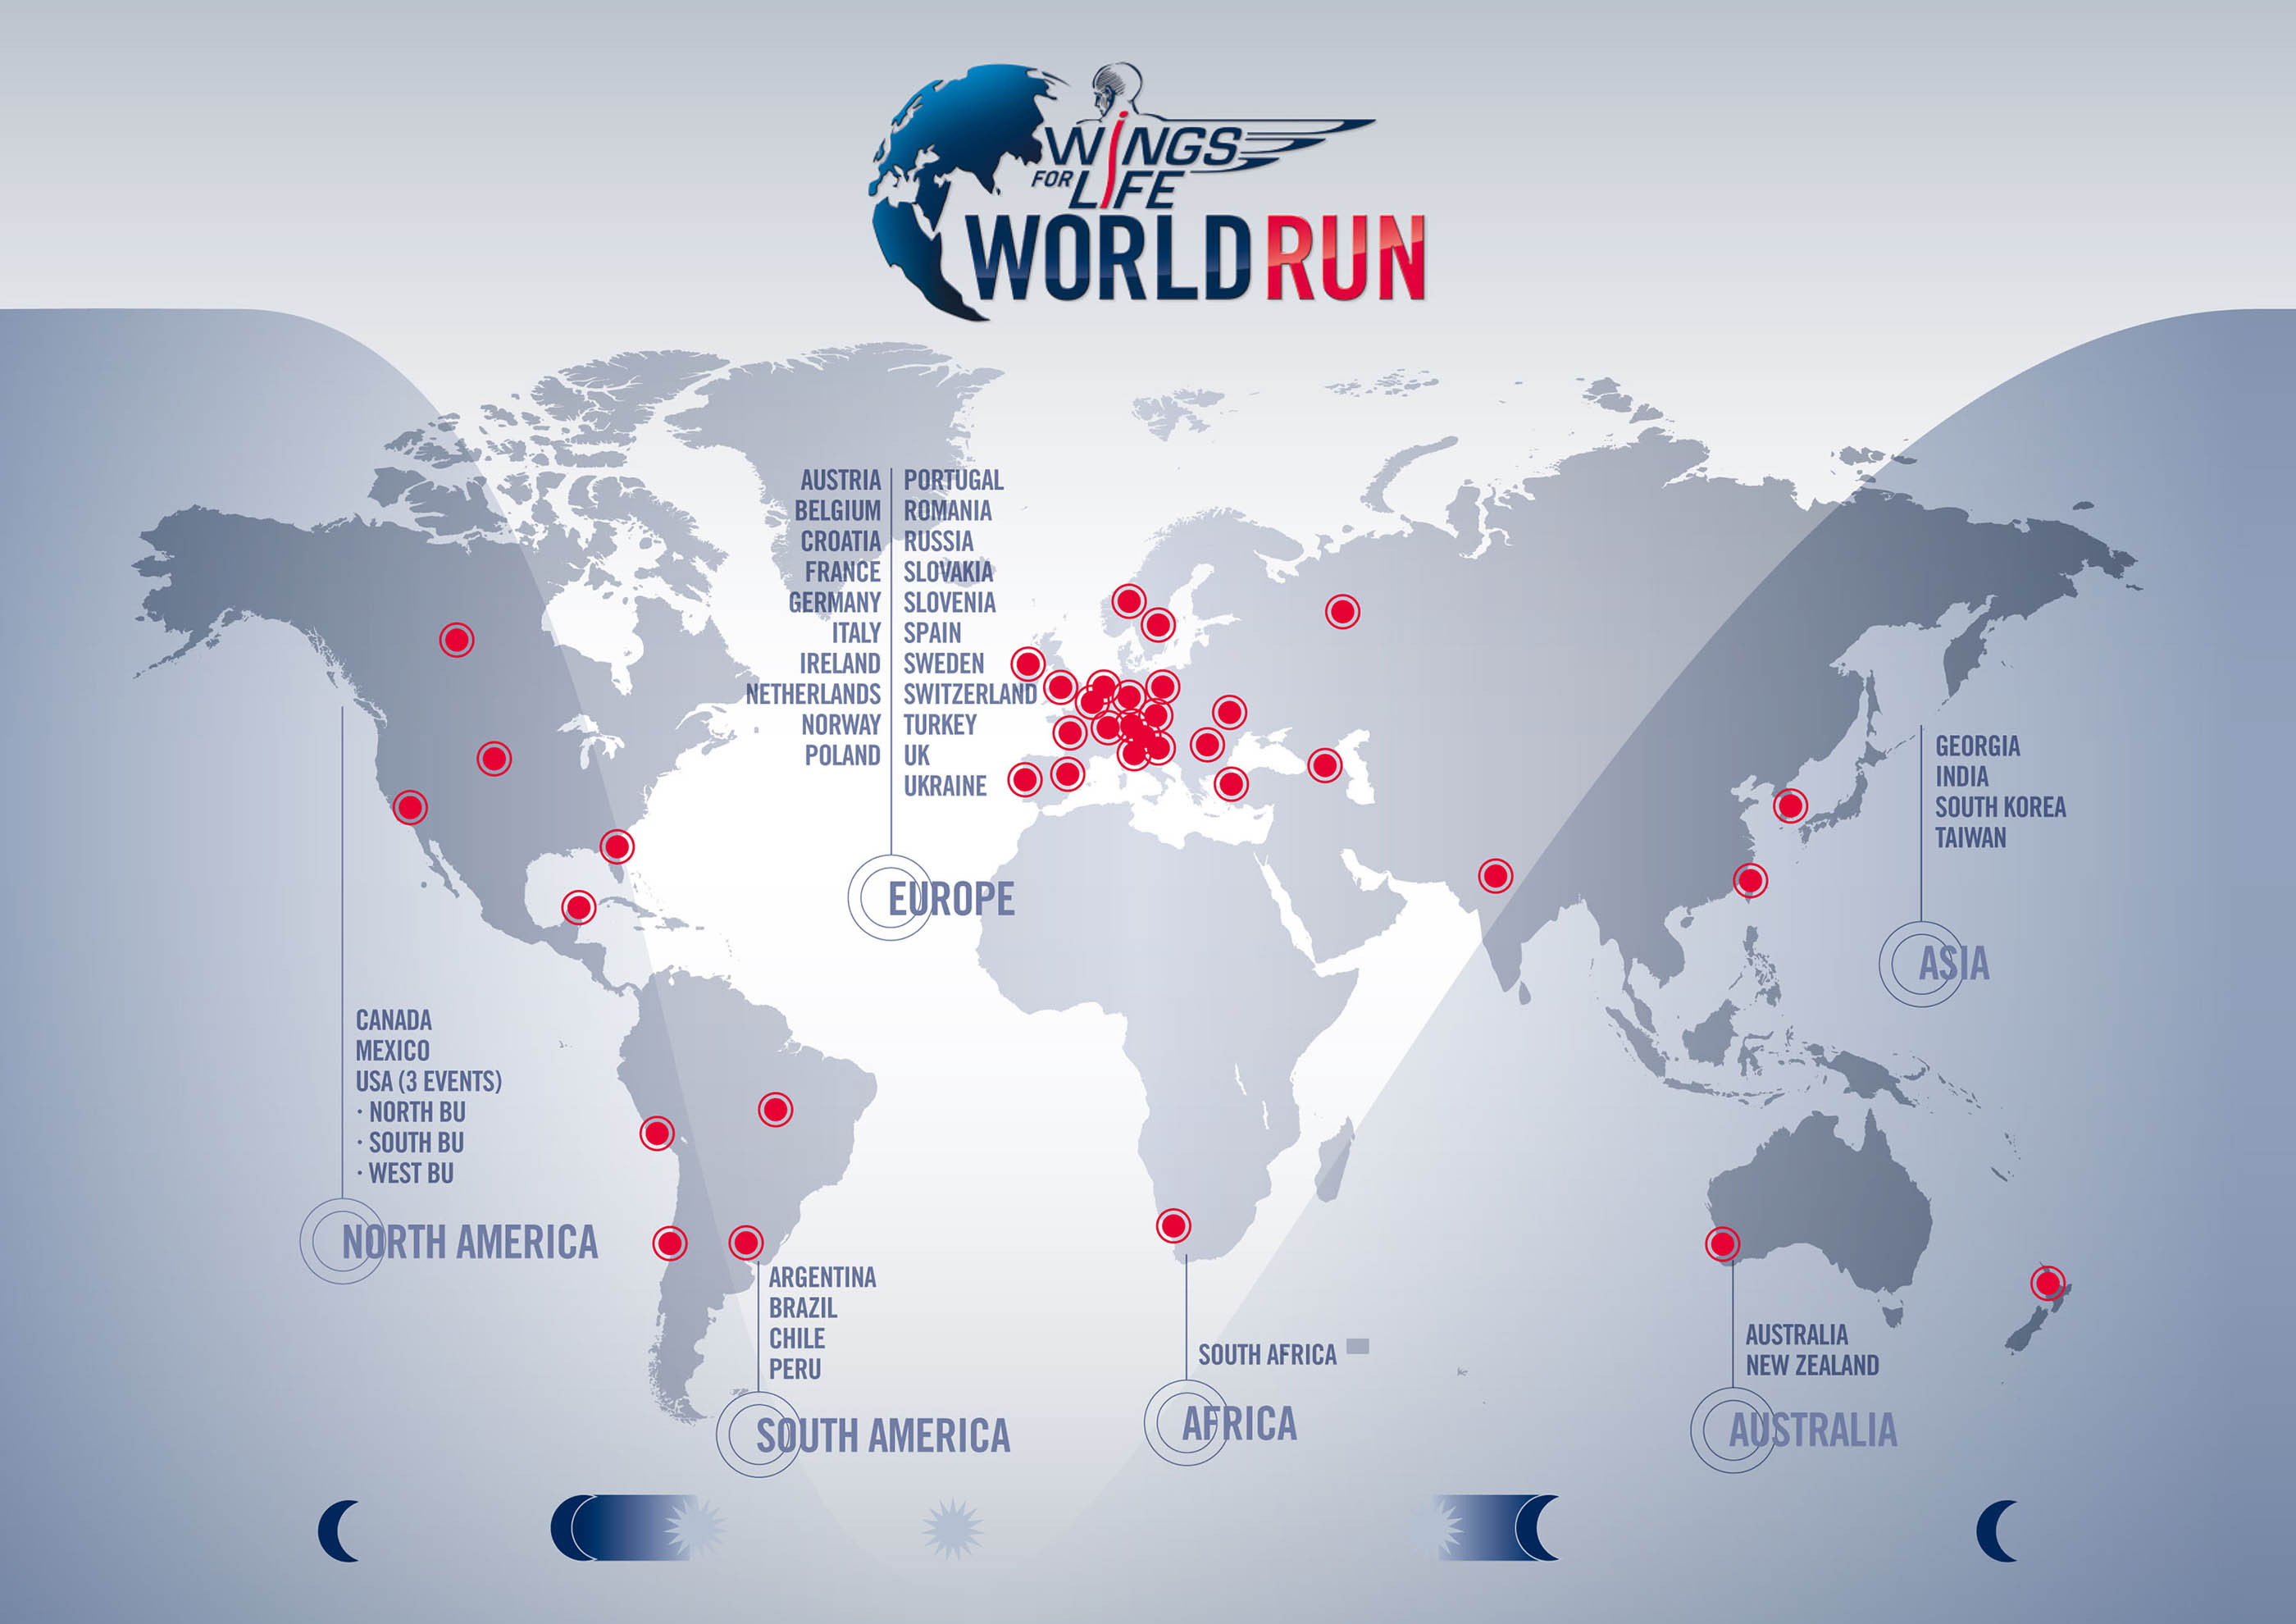 The map shows the 37 running destiantions of the Wings for Life World Run around the globe.